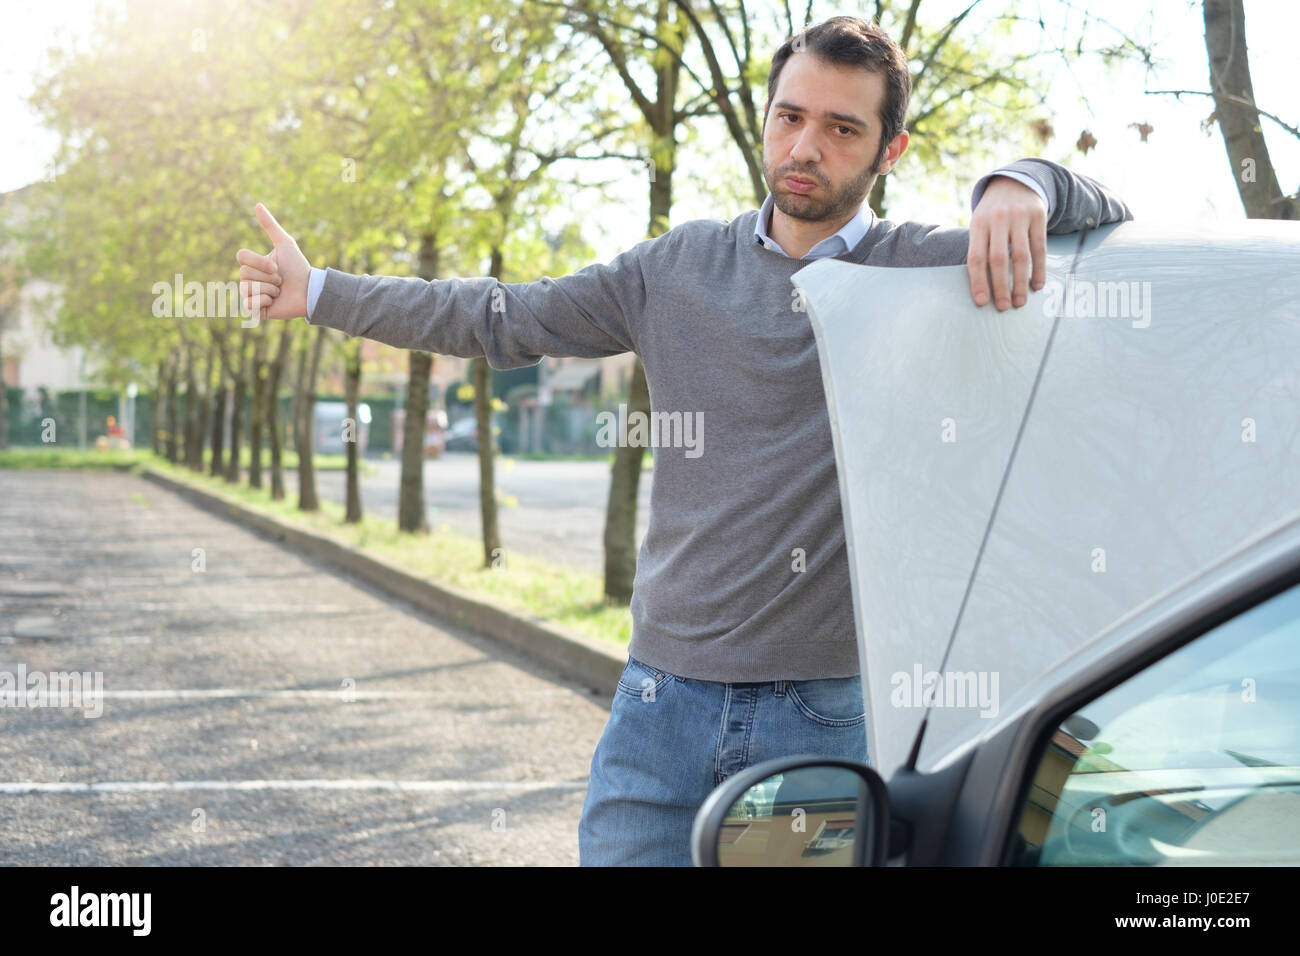 Man hitchhiking on the road after a vehicle breakdown - Stock Image